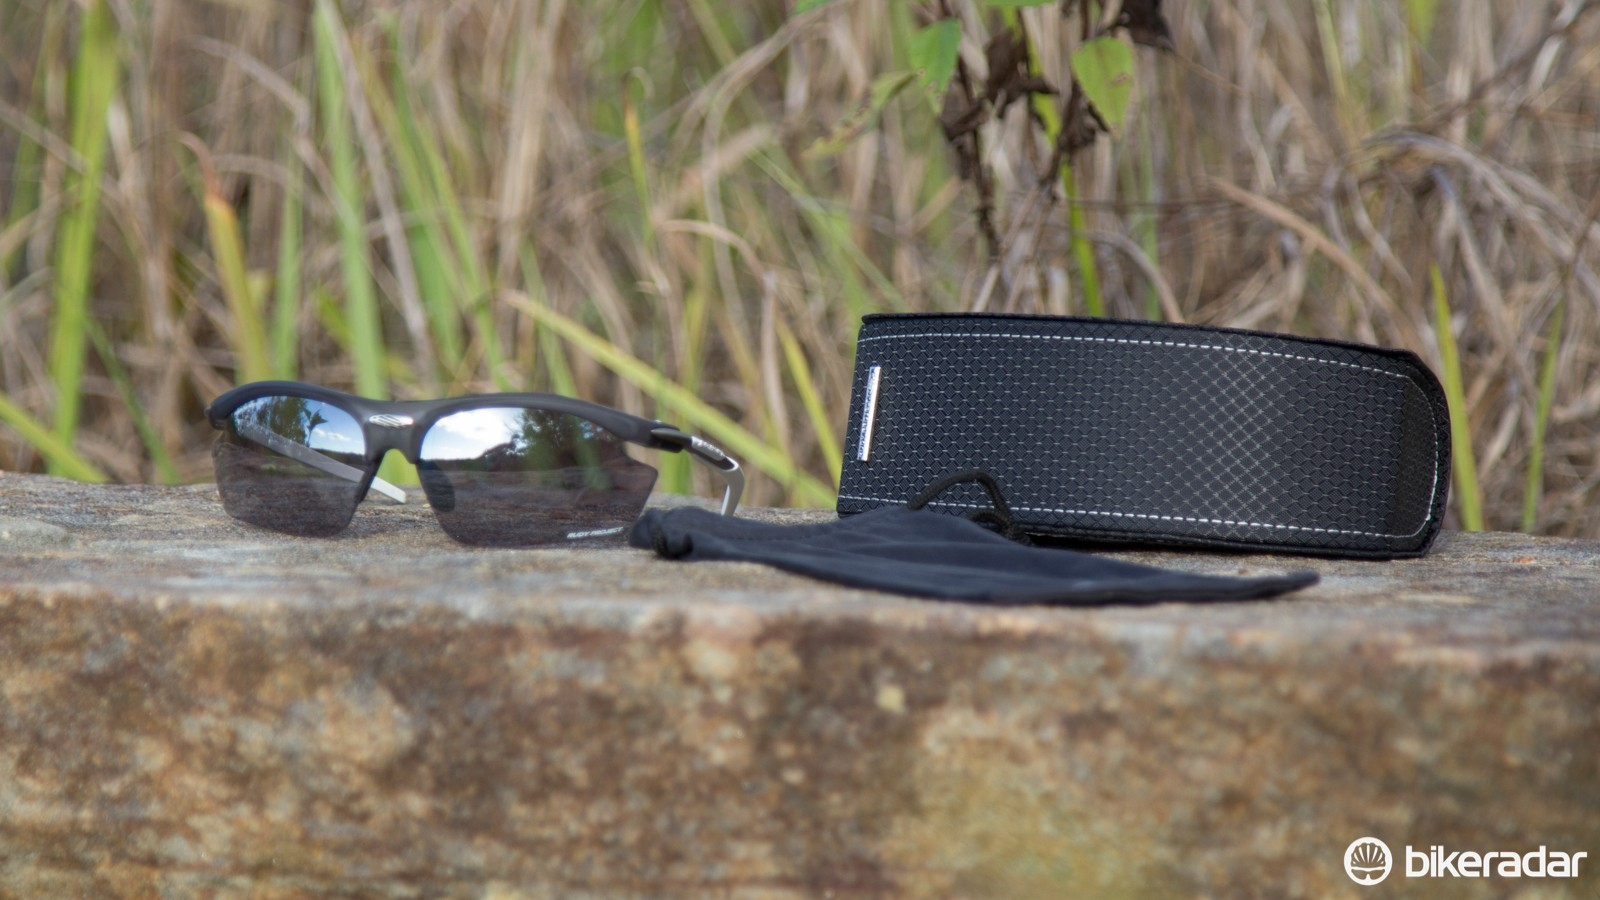 A soft case, which doubles as a wipe cloth, is included with the glasses and hardcase